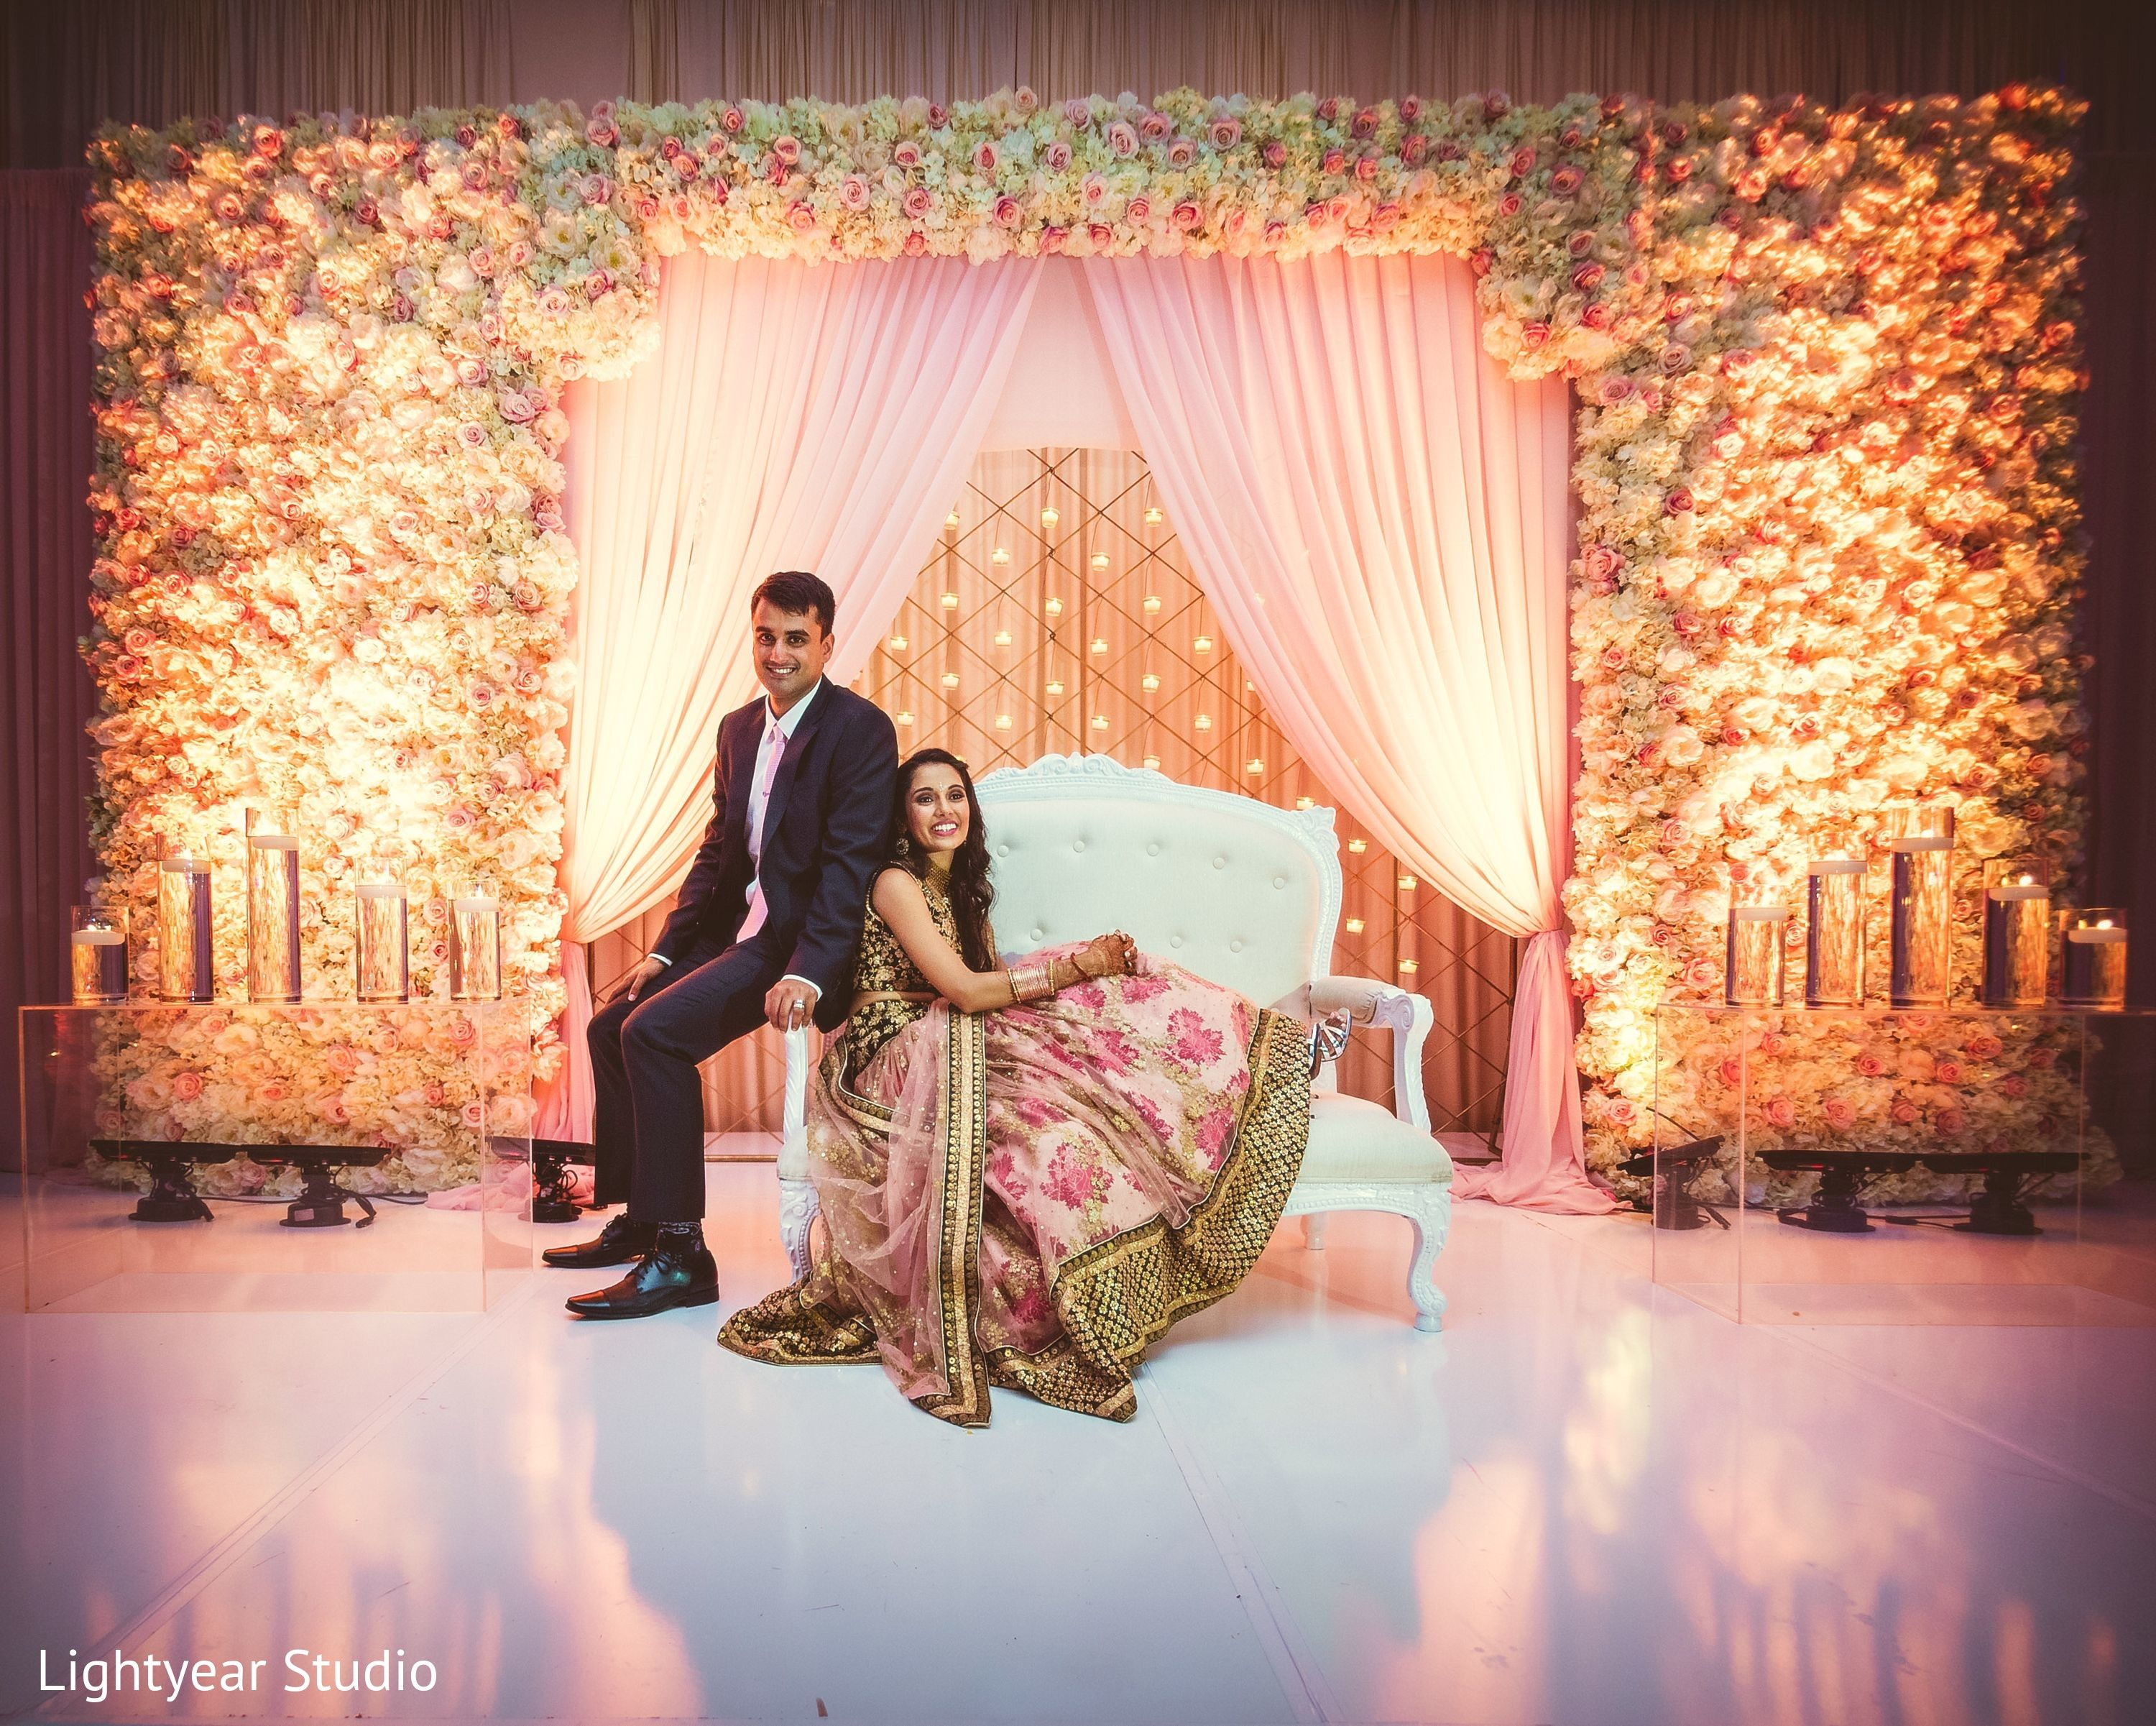 Home Decor Ideas For Indian Wedding Part - 33: Reception Portrait In Jersey City, NJ Indian Wedding By Lightyear Studio